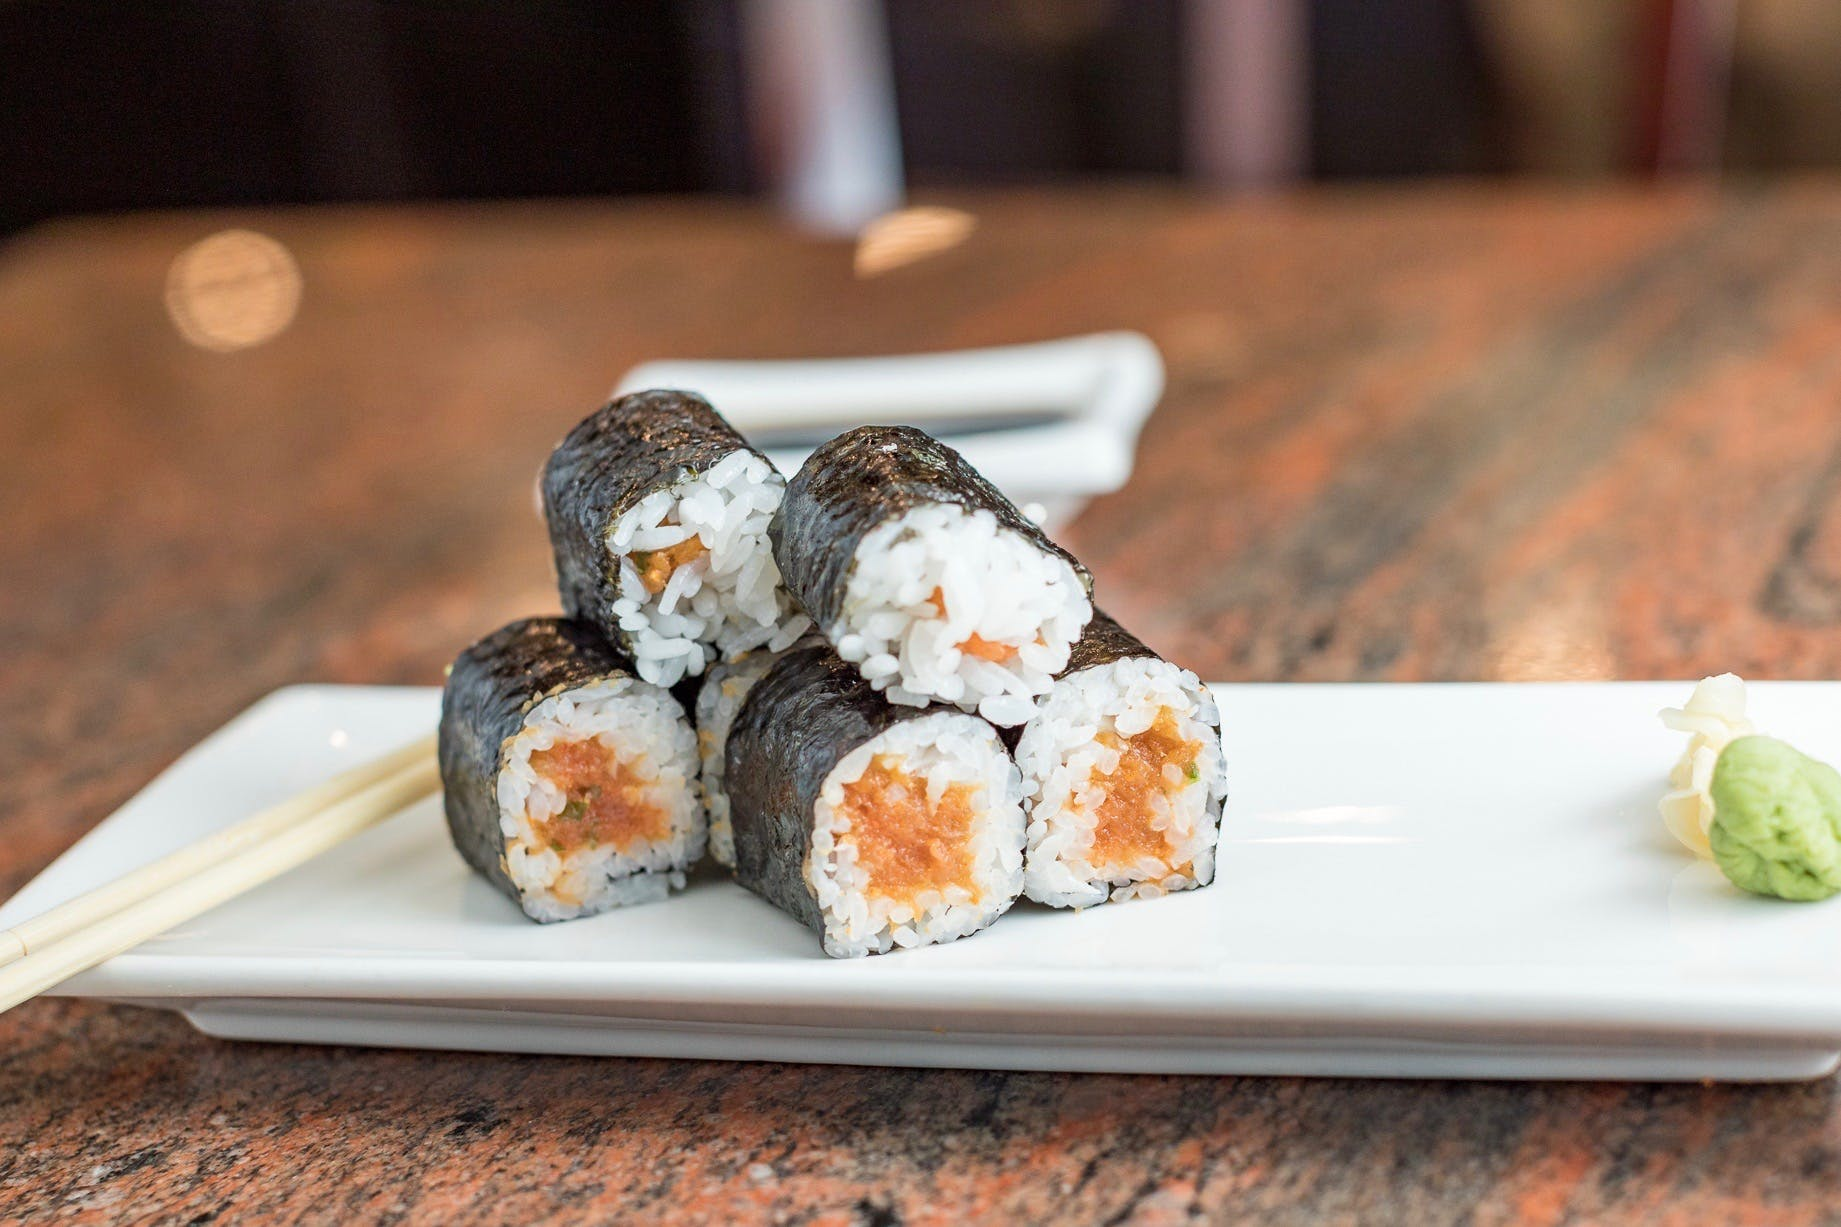 Spicy Tuna Roll from Shanghai Bistro in Eau Claire, WI